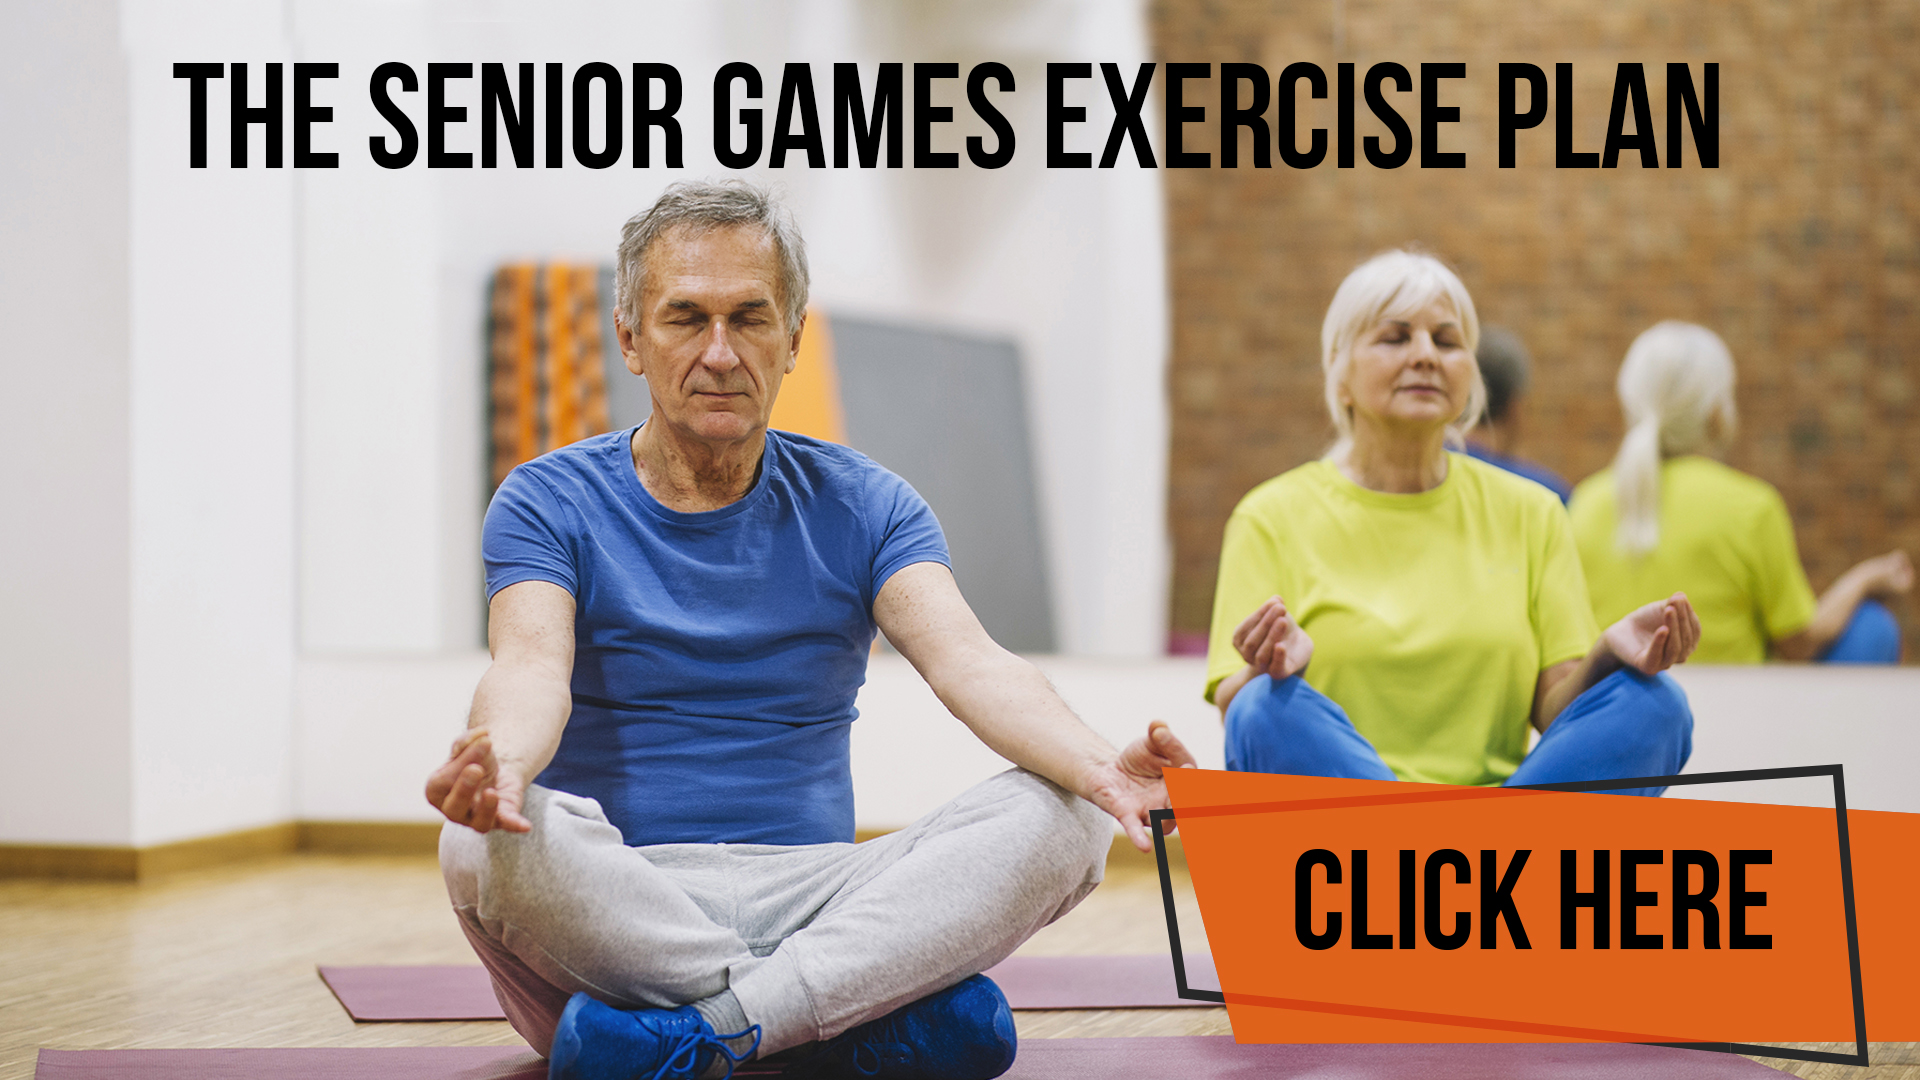 Senior Games Exercise Plan 2